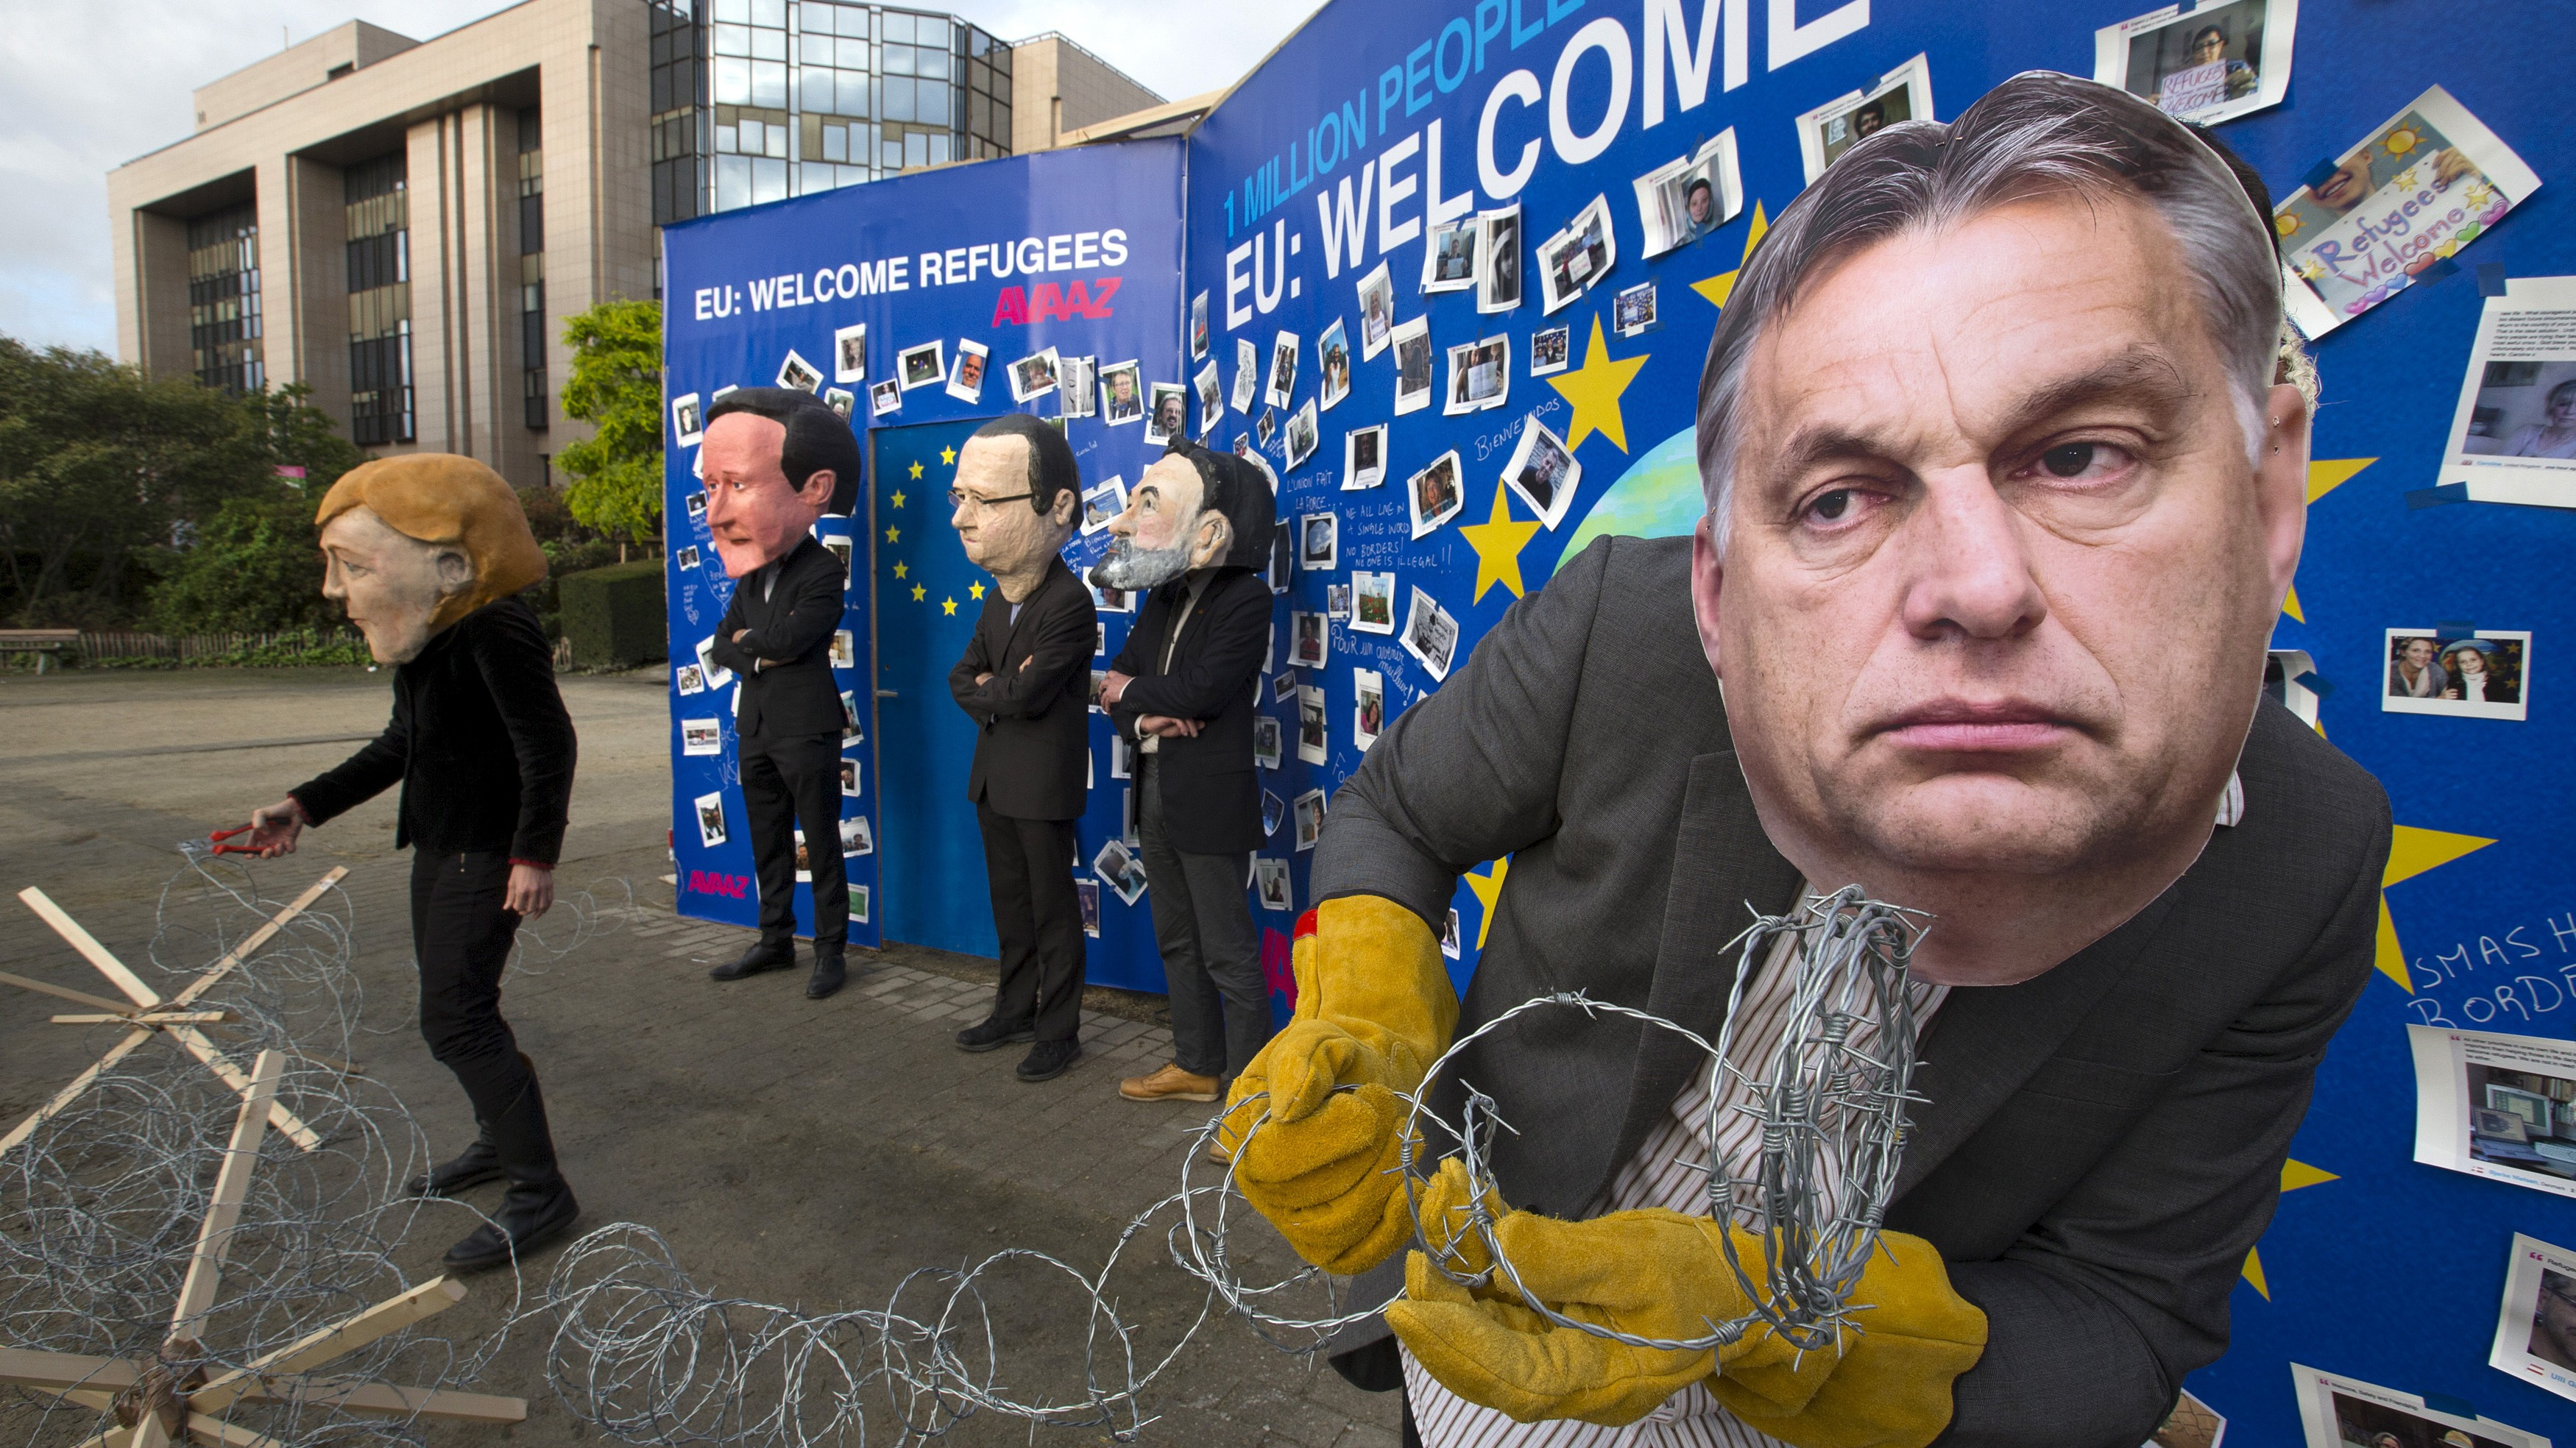 Avaaz's activists wear masks depicting EU leaders during a demonstration in support of migrants in Brussels